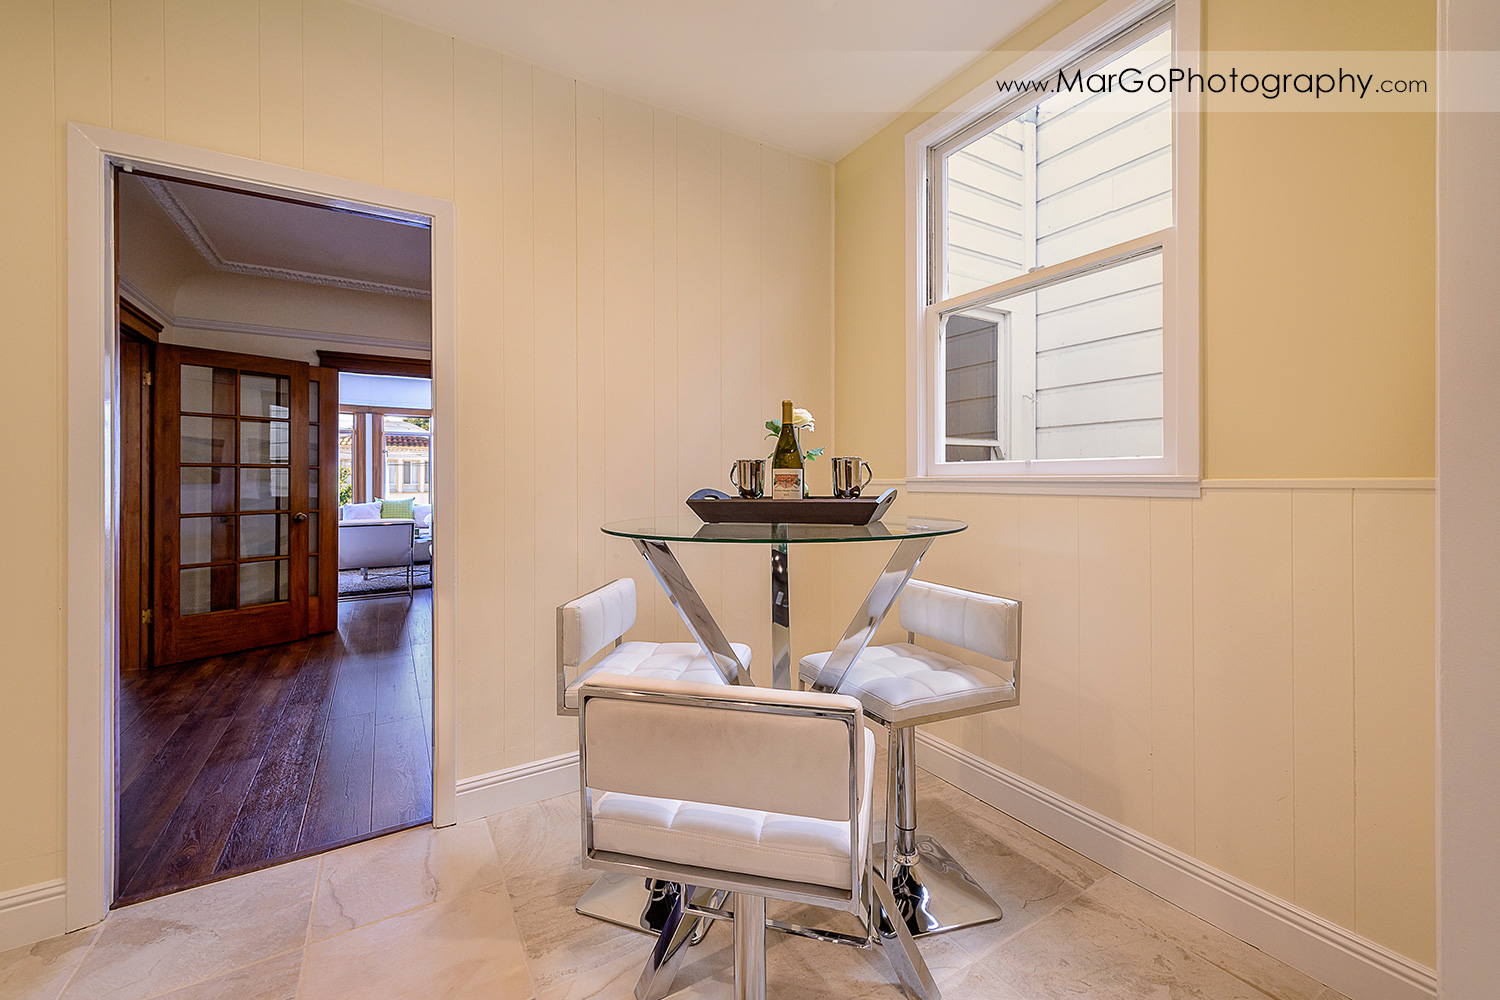 San Francisco house reading corner with round glass table - real estate photography